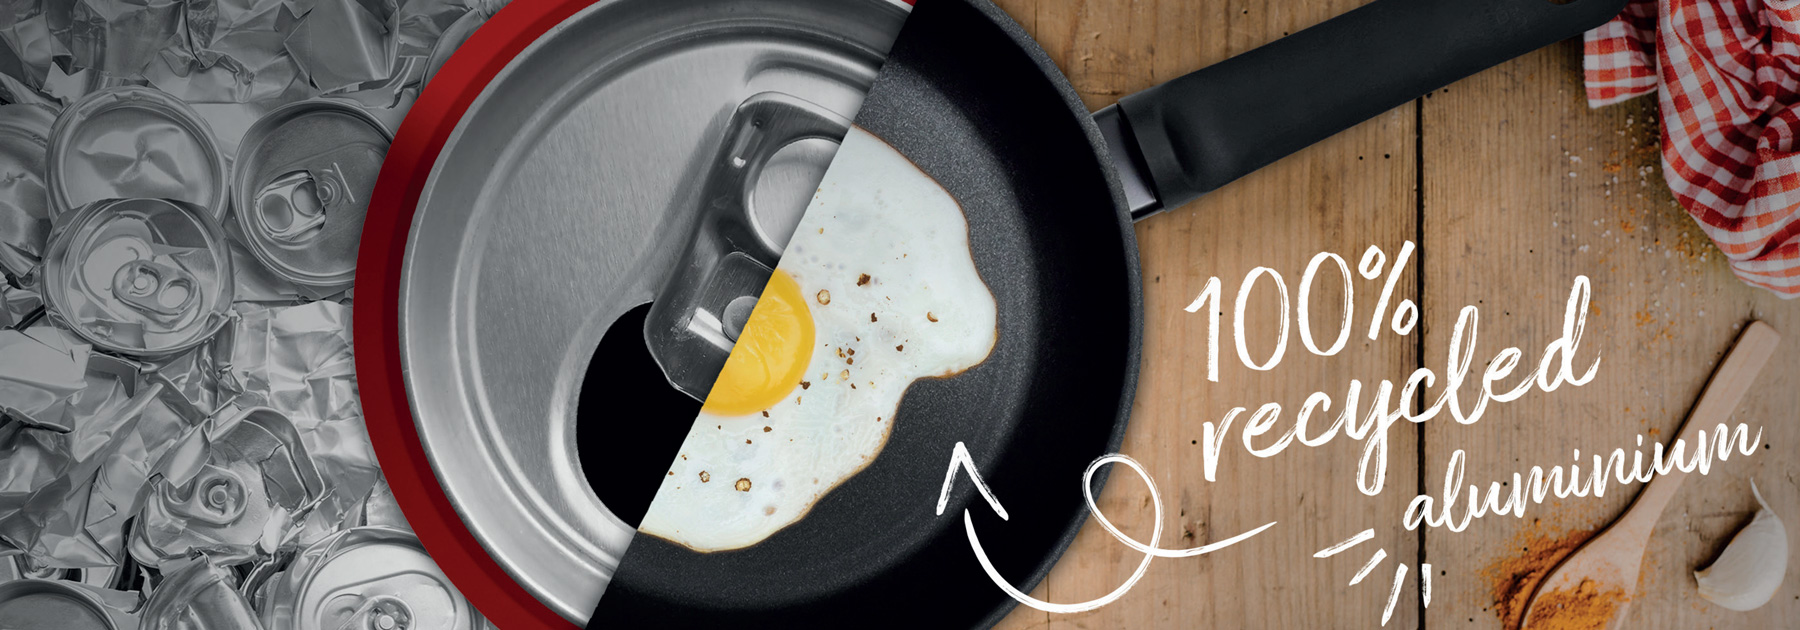 Recycled Frying Pan, 100% Recycled